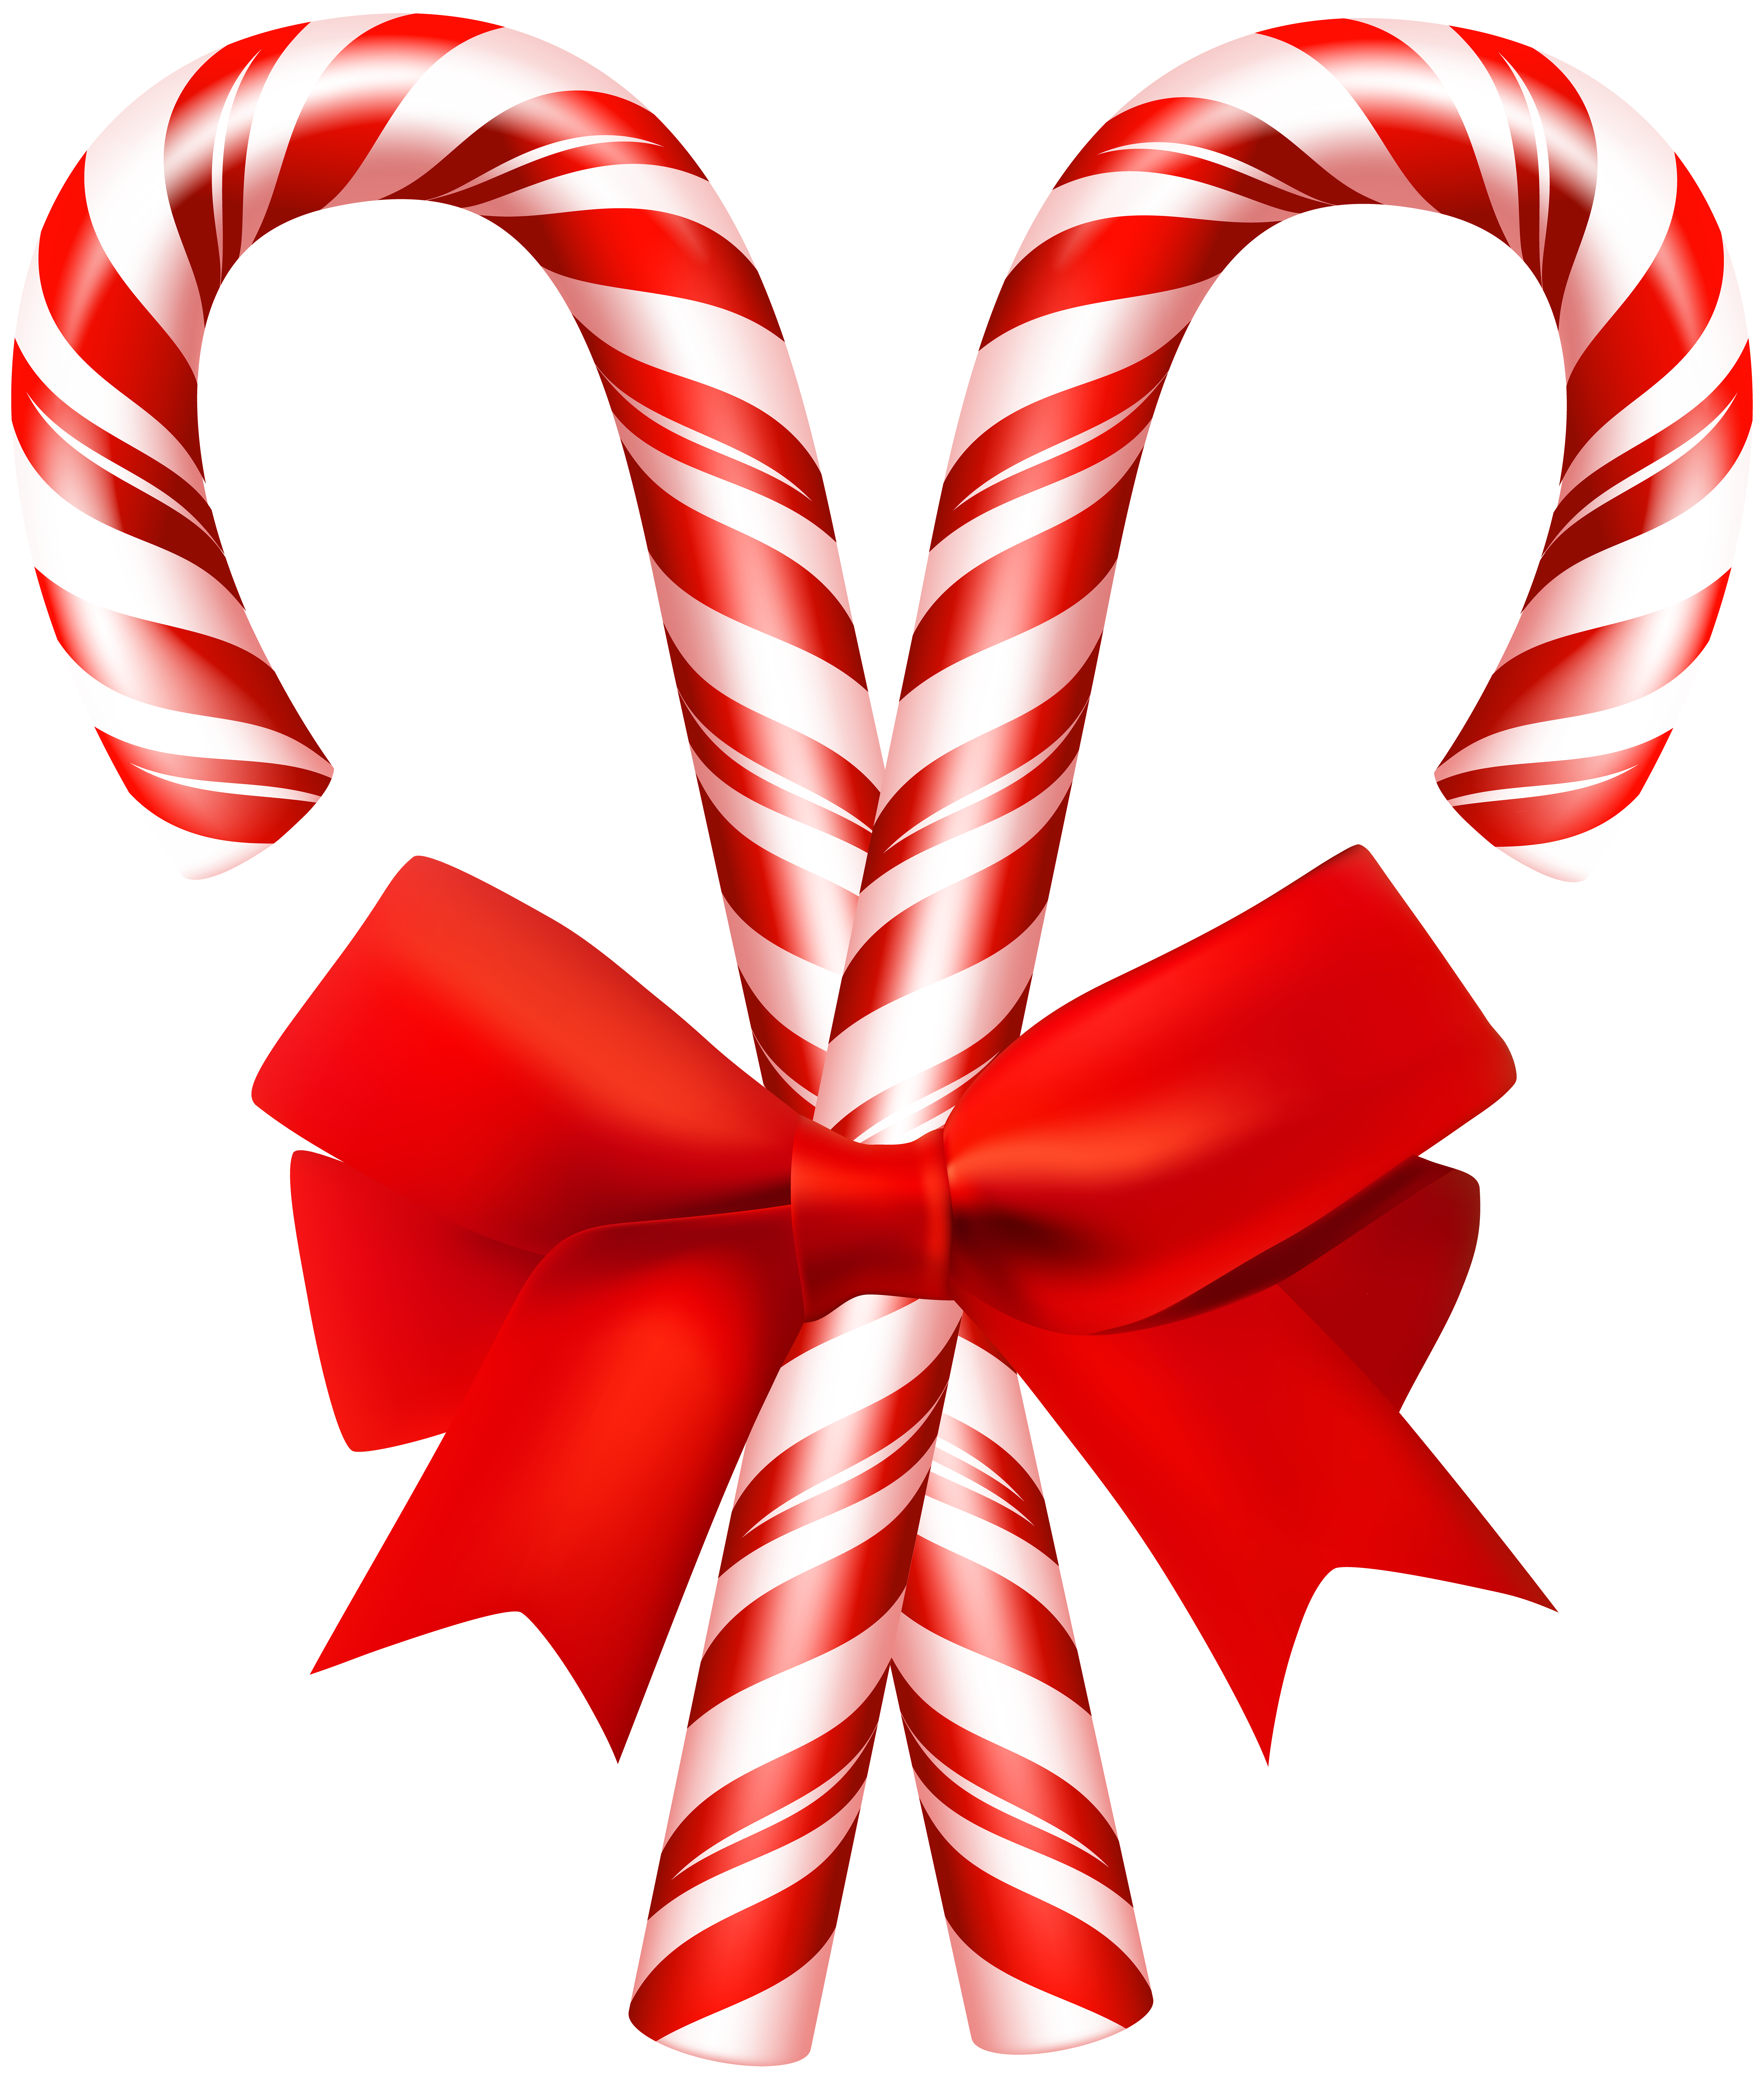 candy cane png 20 free Cliparts   Download images on ...